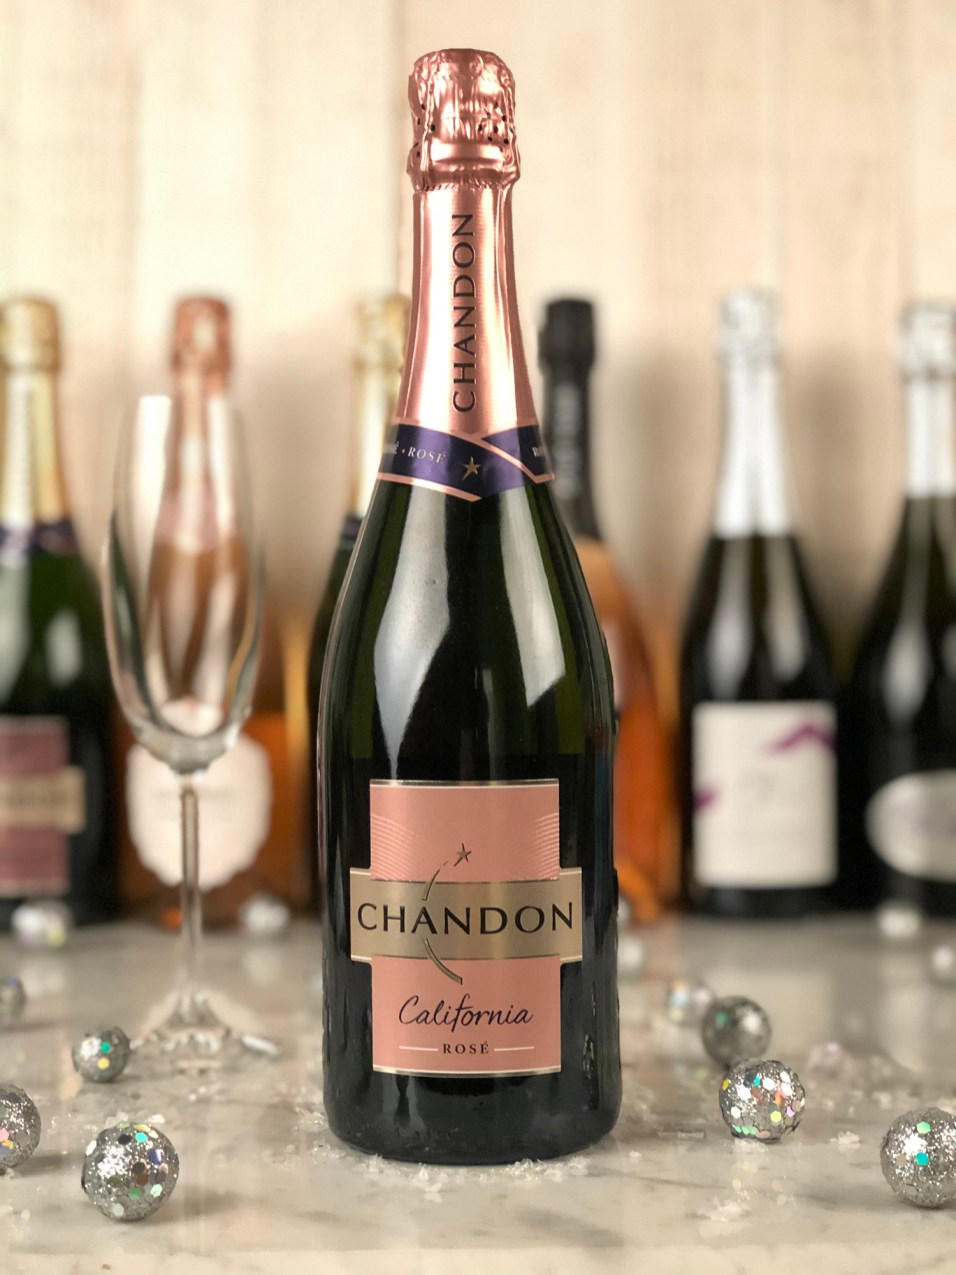 Heinen's 12 Days of Bubbles - Day 6 – Tuesday, December 17 Chandon Rose